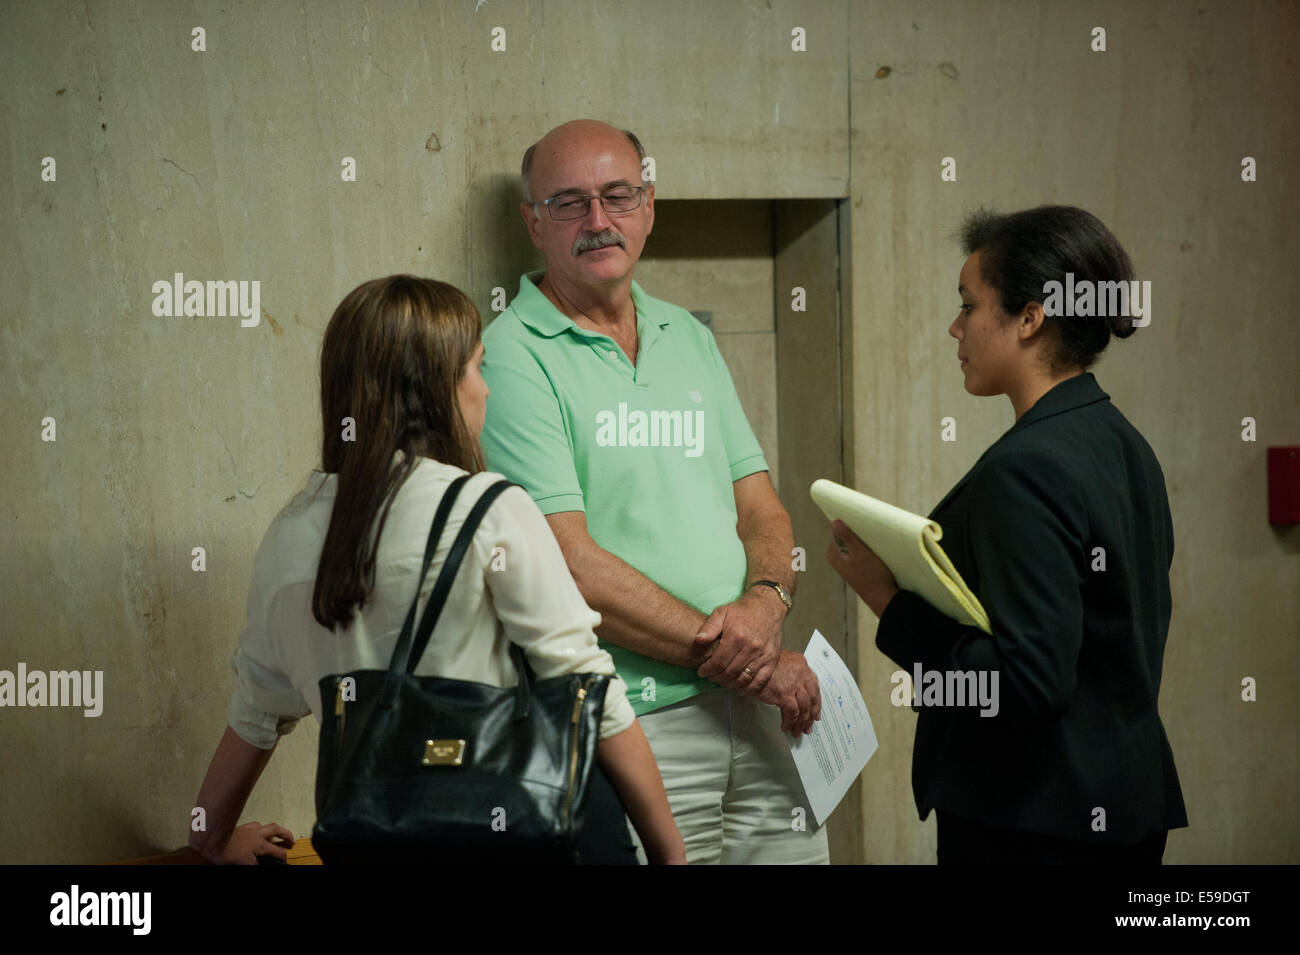 Manhattan, New York, USA. 23rd July, 2014. The unidentified father of Daniel Petryszyn outside the courtroom following - Stock Image